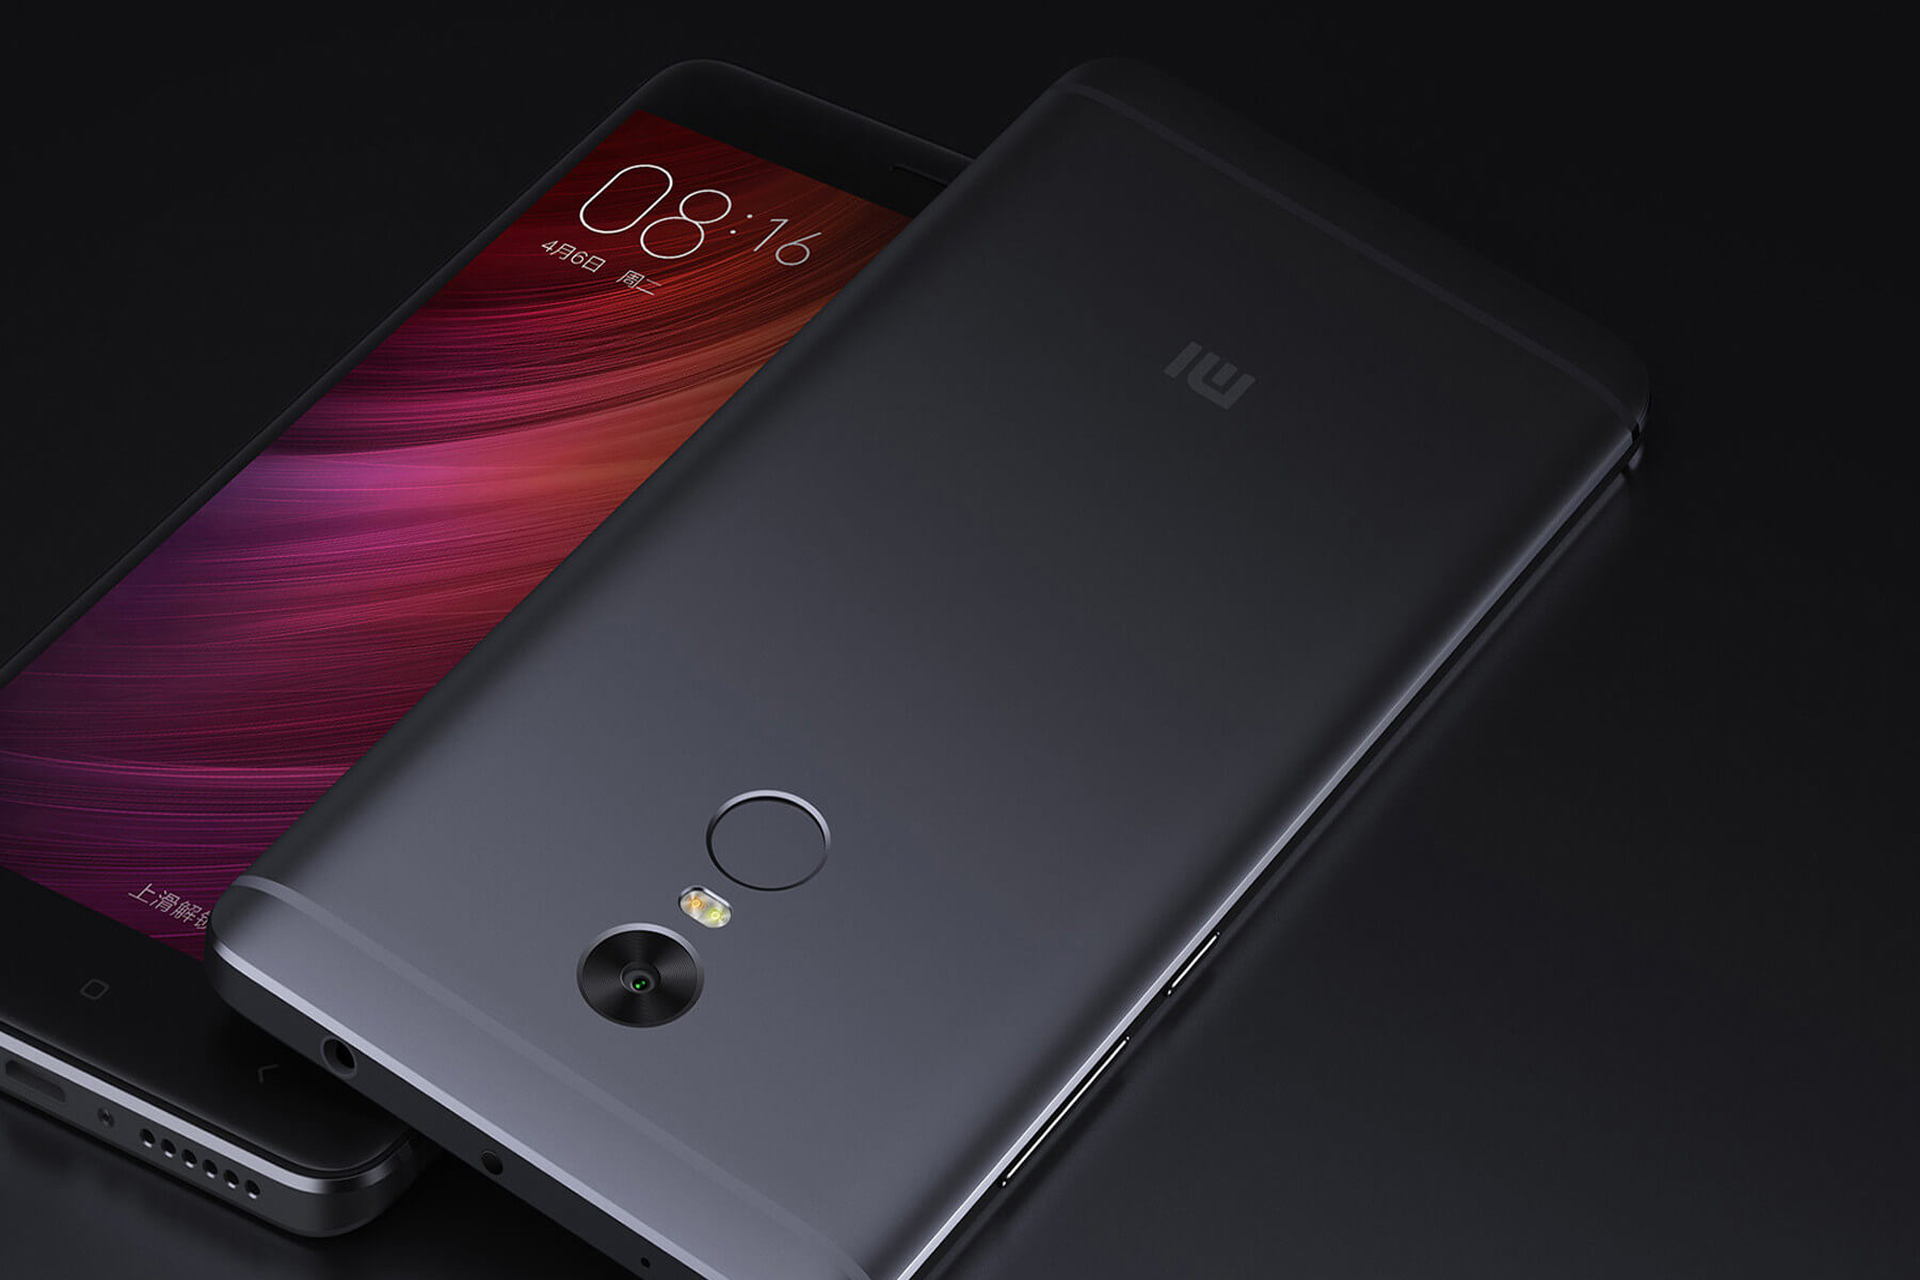 Xiaomi Redmi Note 4 Tips And Tricks: How To Install TWRP Recovery And Root Xiaomi Redmi Note 4